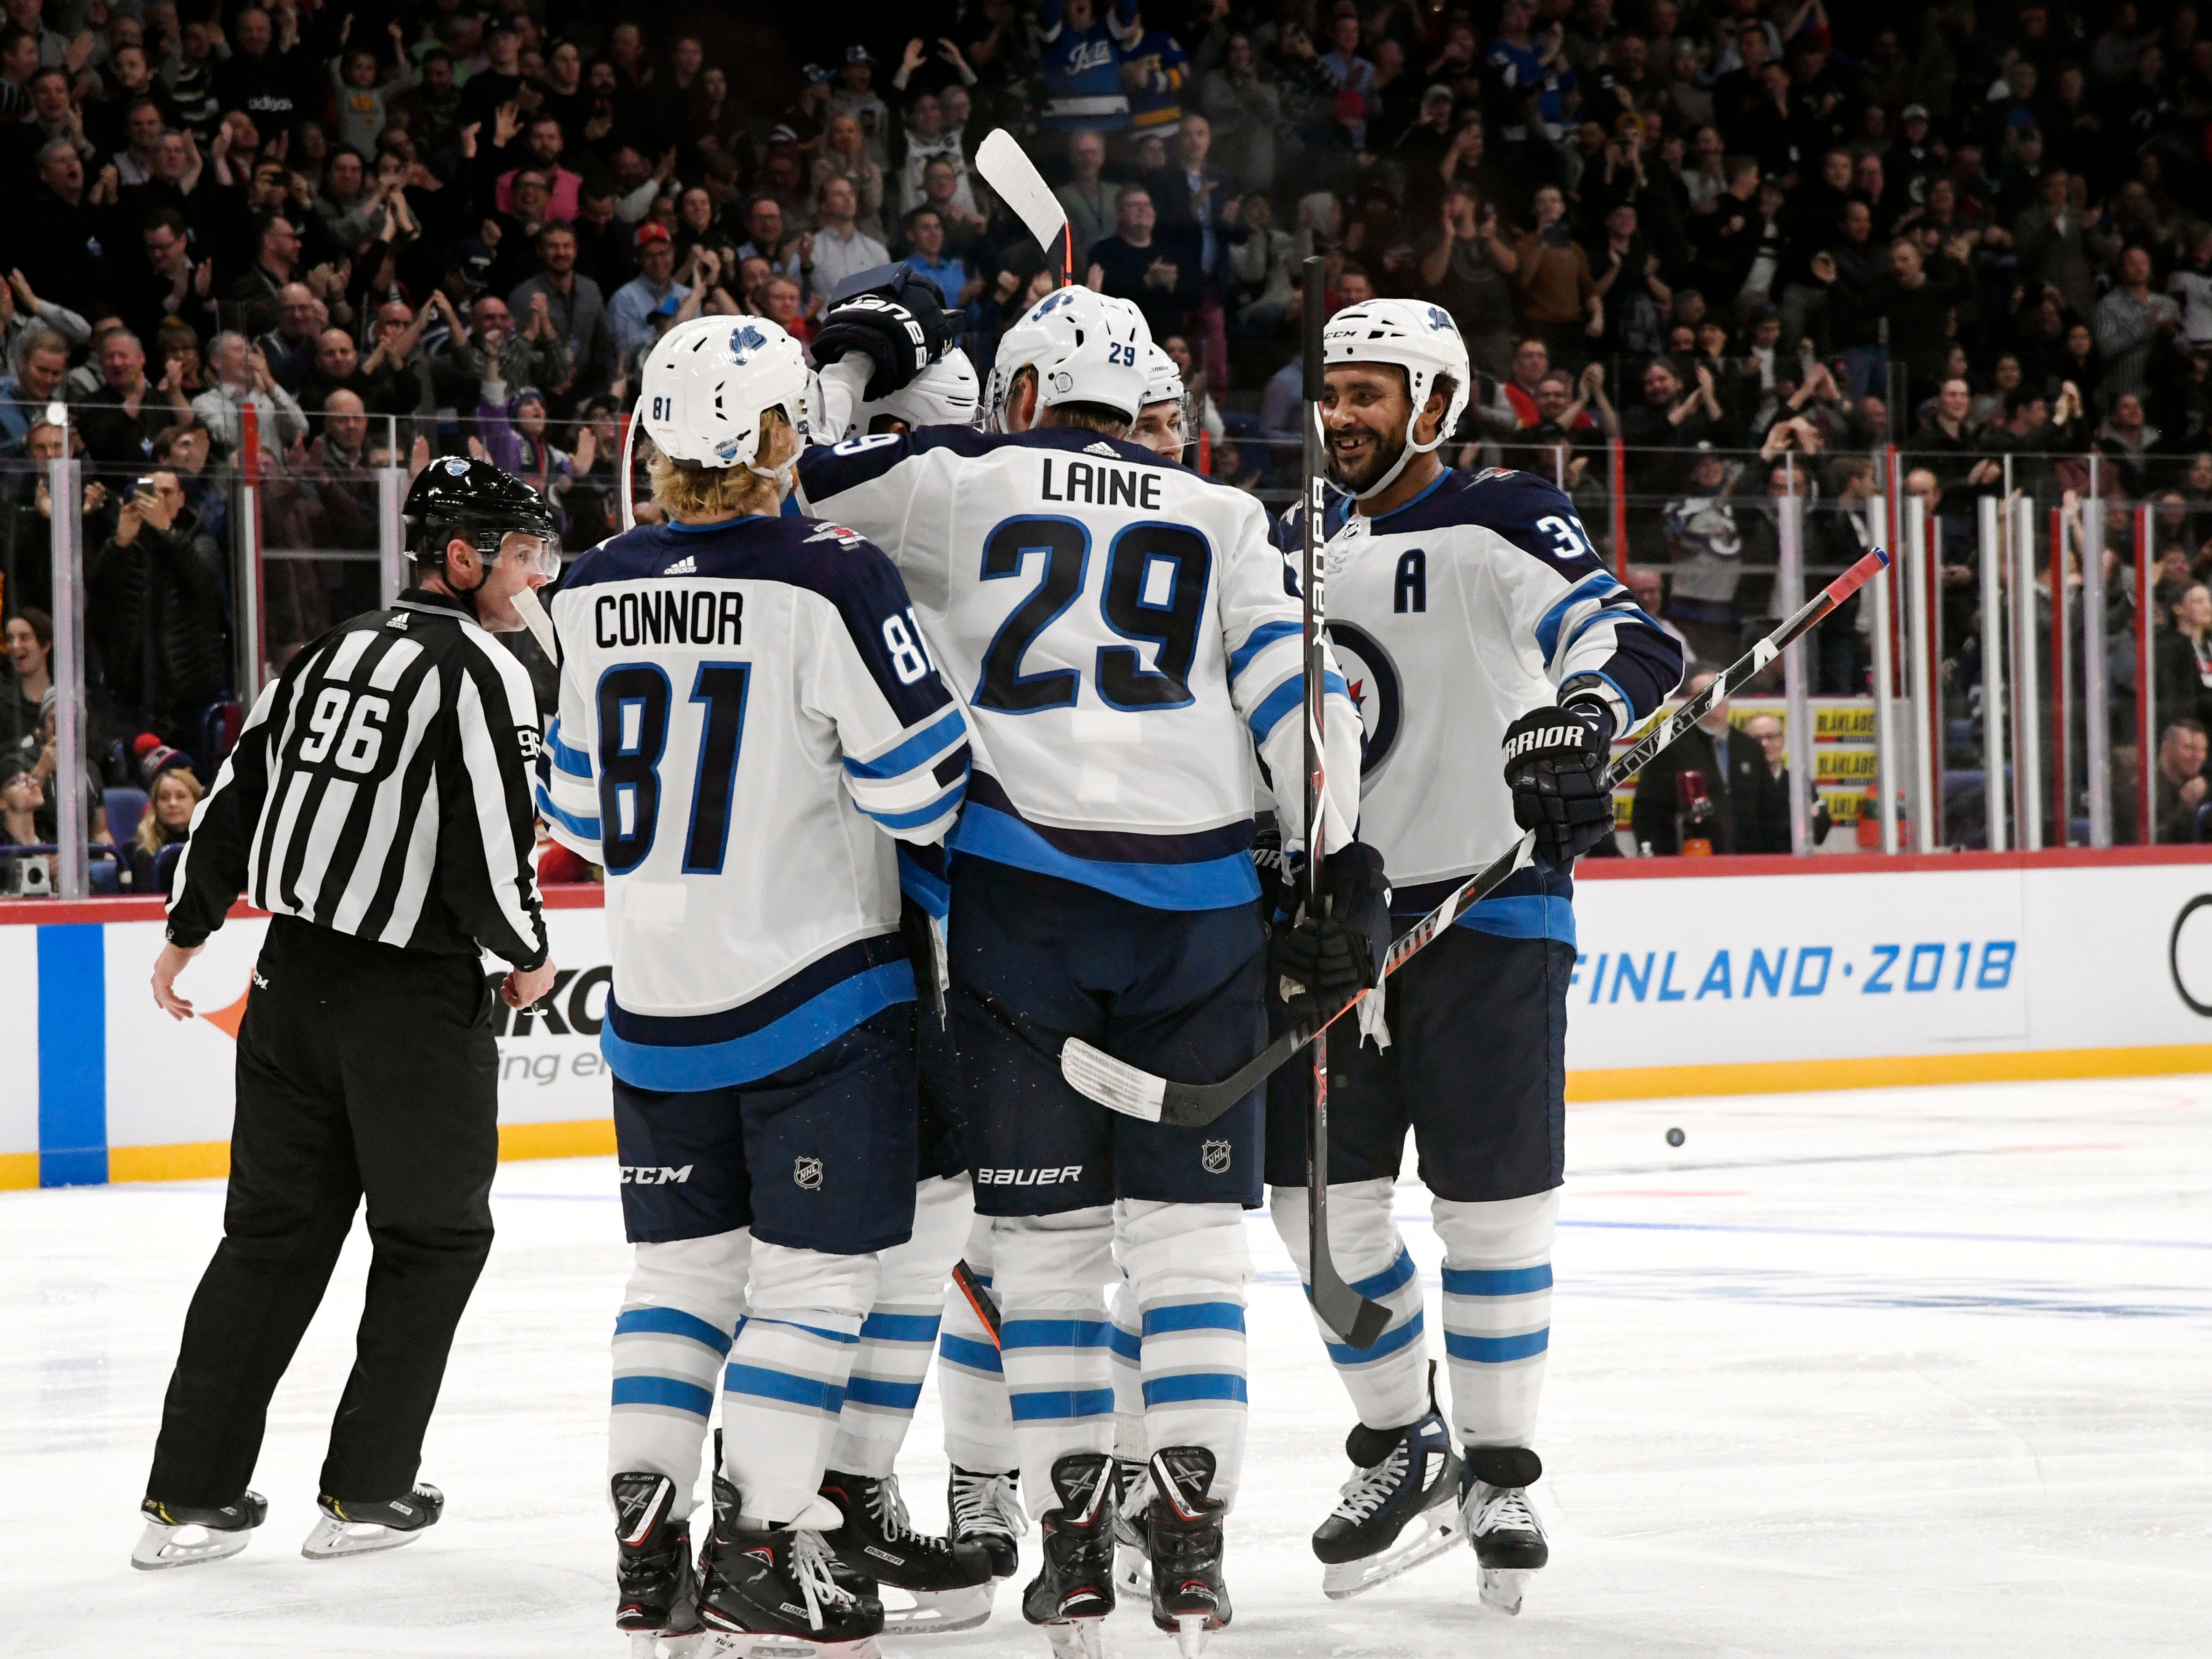 Nov. 1: Patrik Laine, 29, a native of Finland, had a hat trick in a 4-2 win against the Panthers in Helsinki.